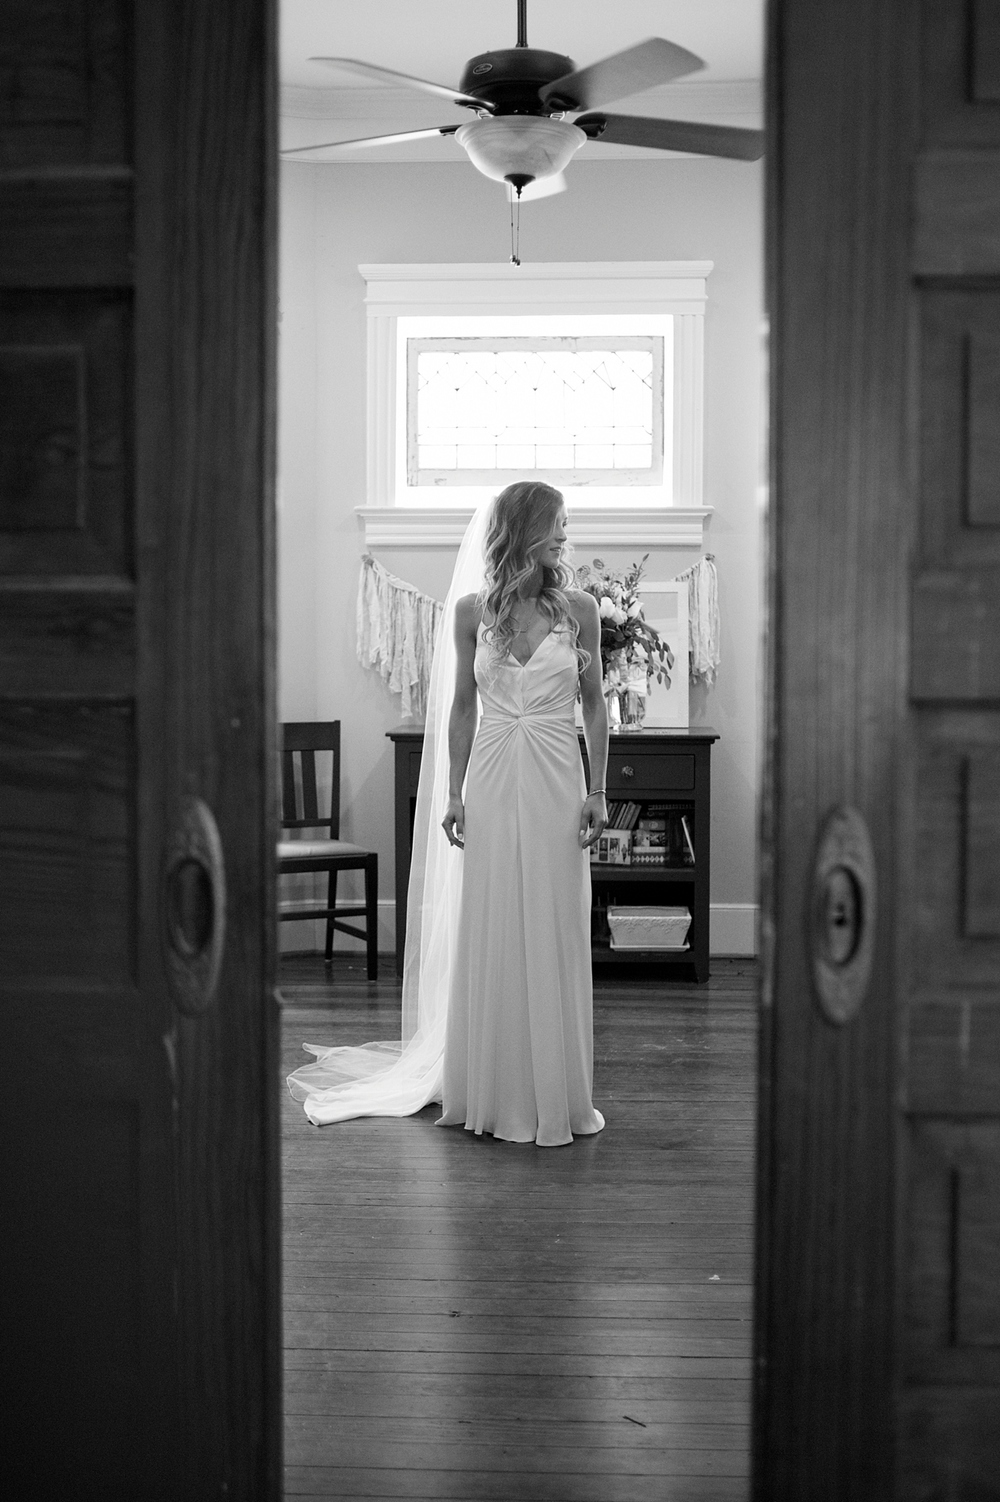 Bloom&Lo_AtlantaPhotographer_AmeliaTatnall_2015_Wedding_Georgia_Atlanta_AmbientStudio_Sara&Jared_Blog_Portfolio__0024.jpg